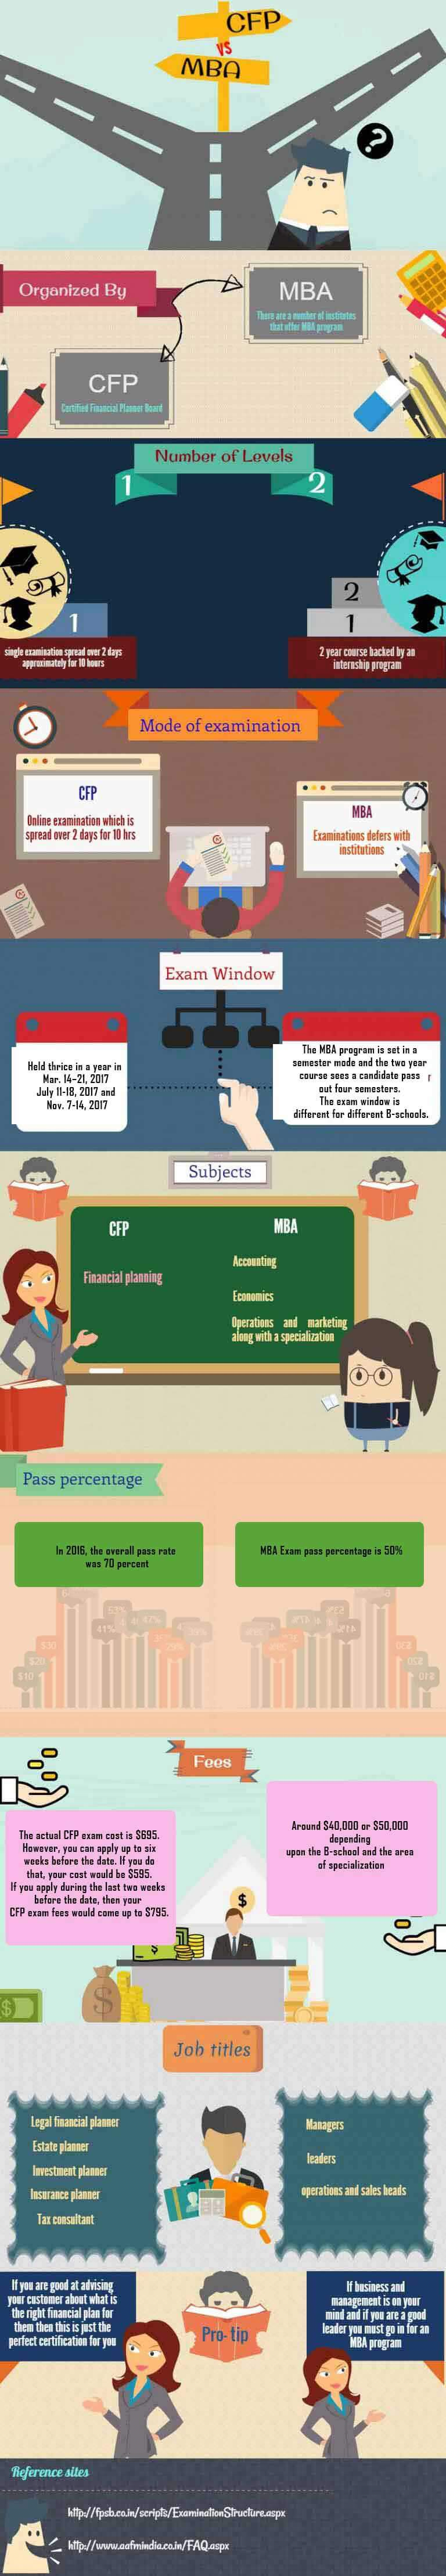 CFP vs MBA - Which One To Choose? | WallstreetMojo